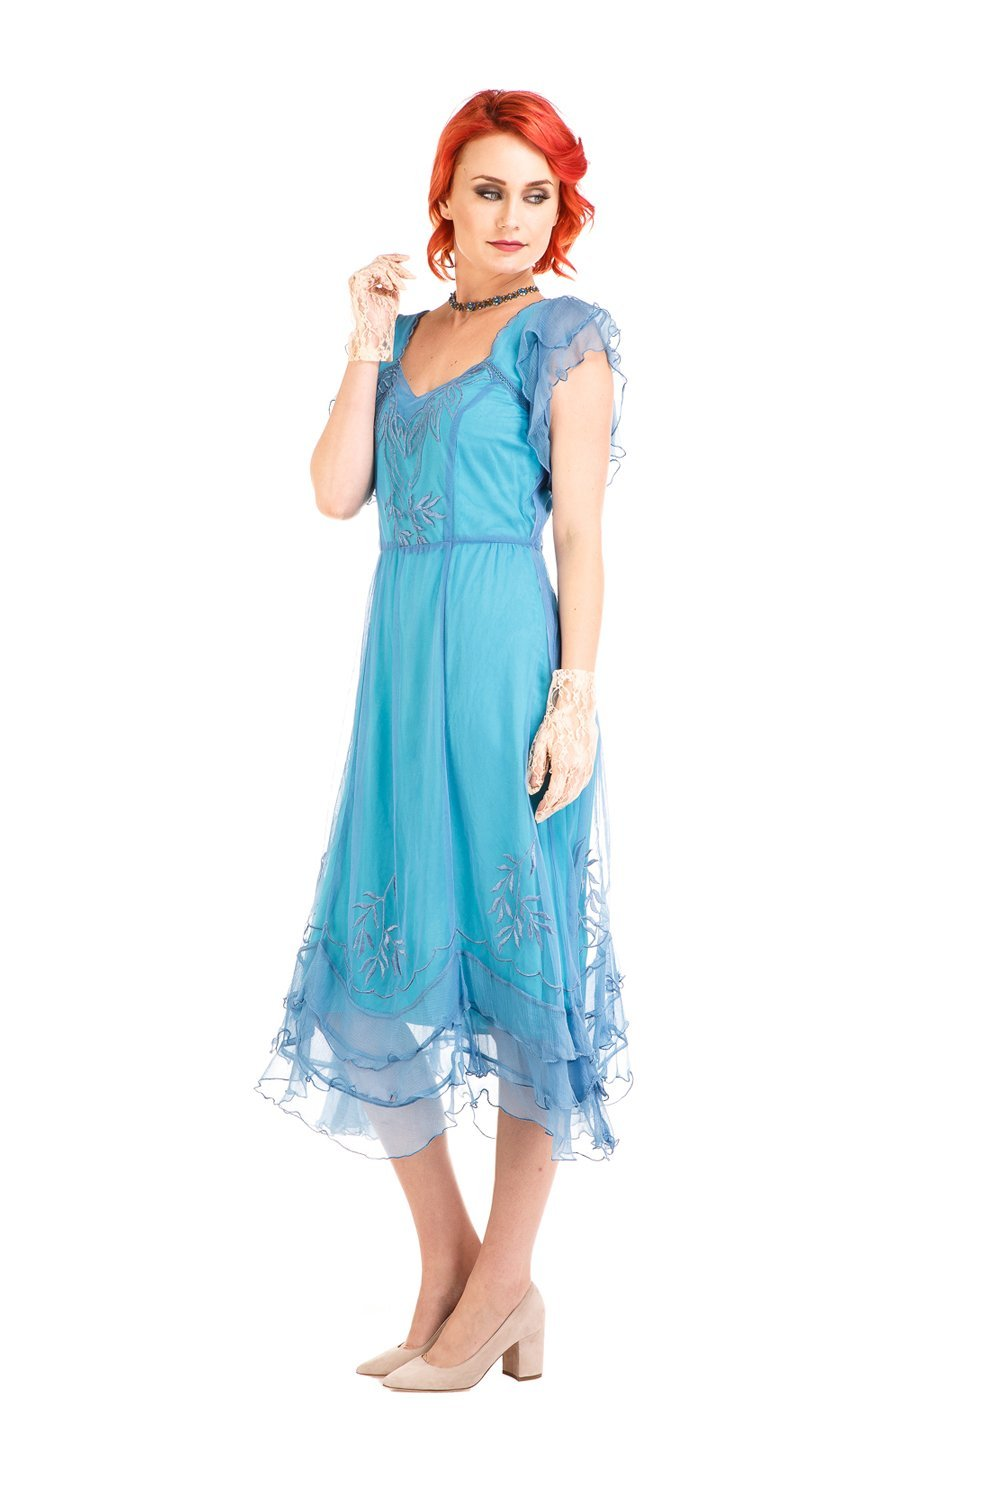 Nataya AL-284 Olivia 1920s Flapper Style Party Dress in Turquoise ...